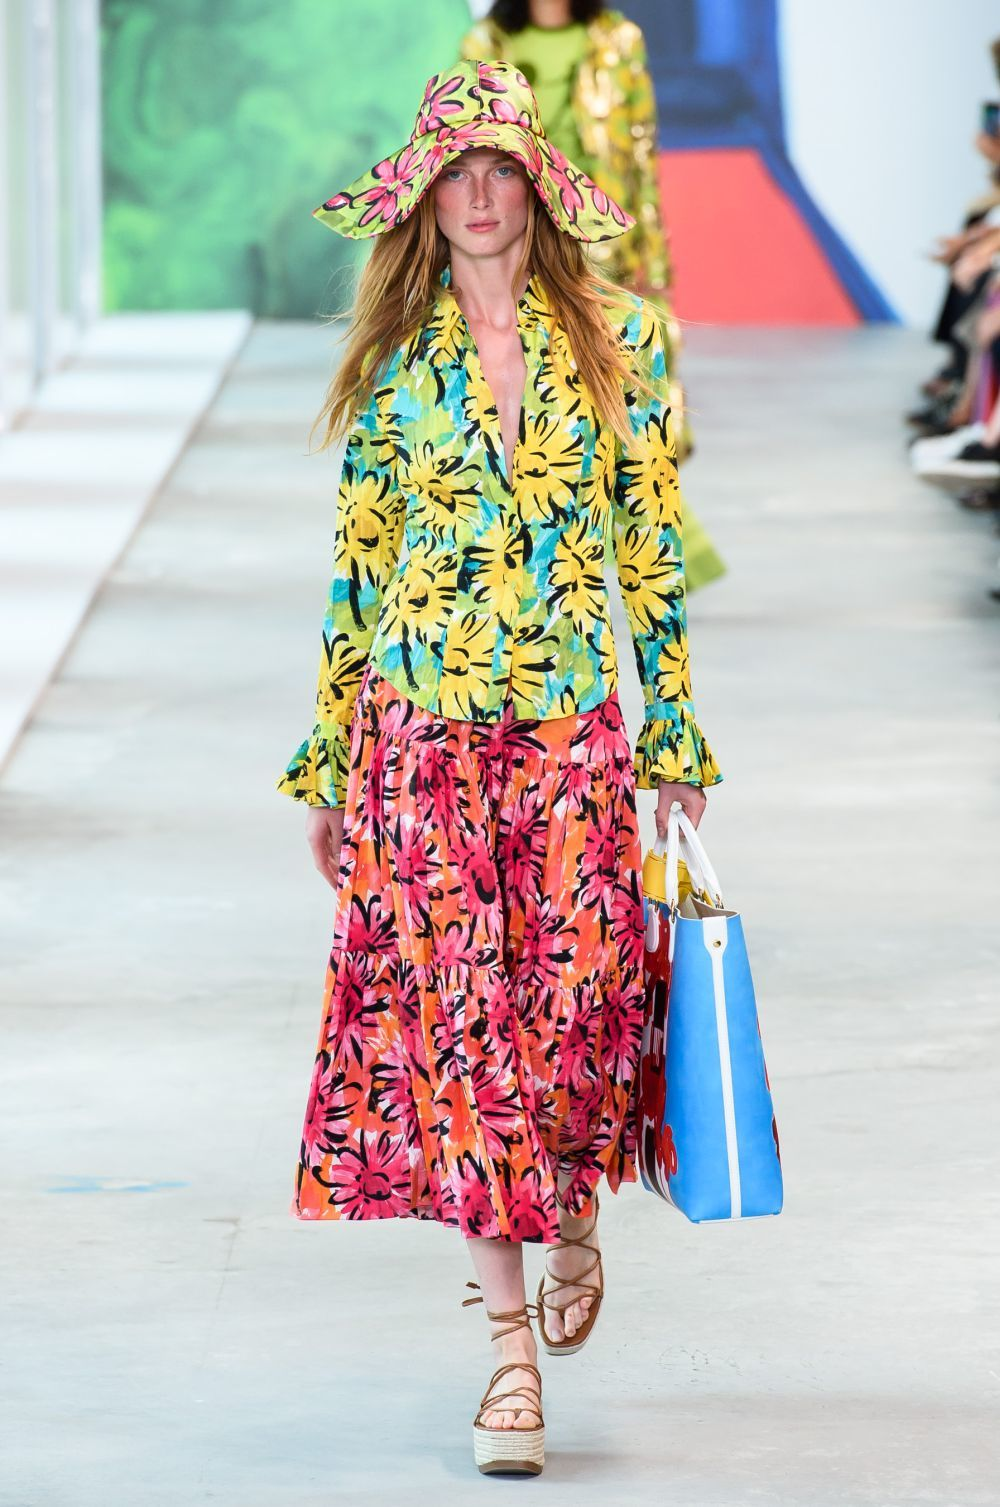 Michael Kors Collection Primavera Verano 2019